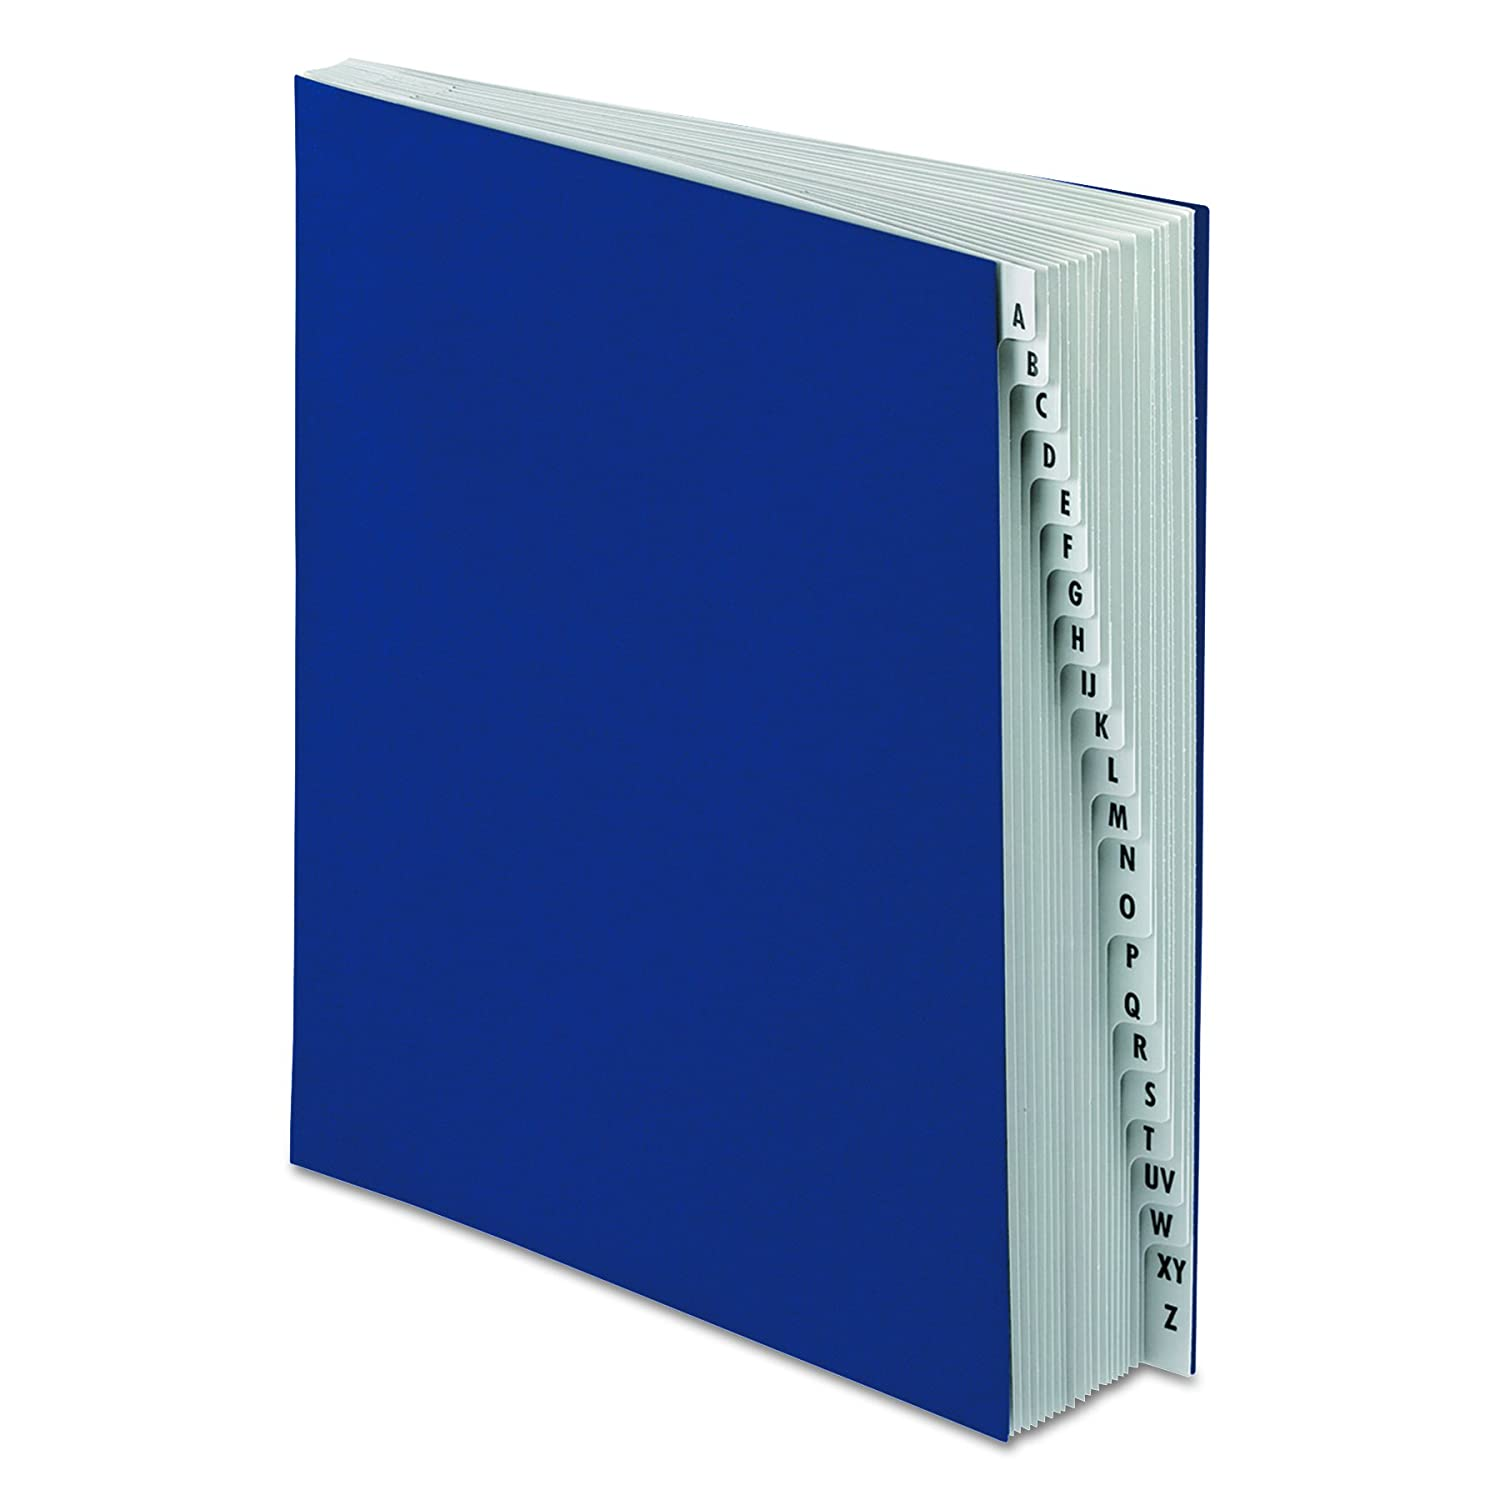 Pendaflex Acrylic Ccoated Expanding Desk File, A-Z Indexing/20 dividers, Letter (DDF3-OX) Esselte Corporation DDF3OX